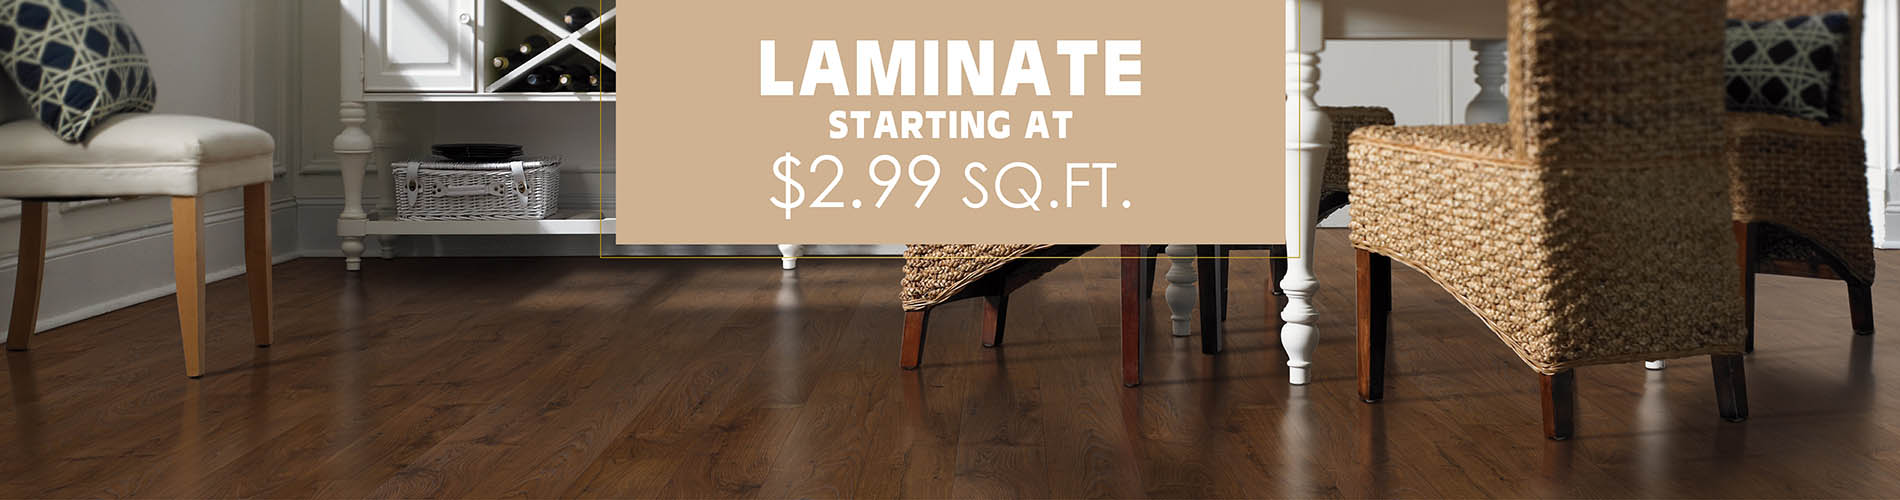 Laminate starting at $2.99 sq.ft. this month only!